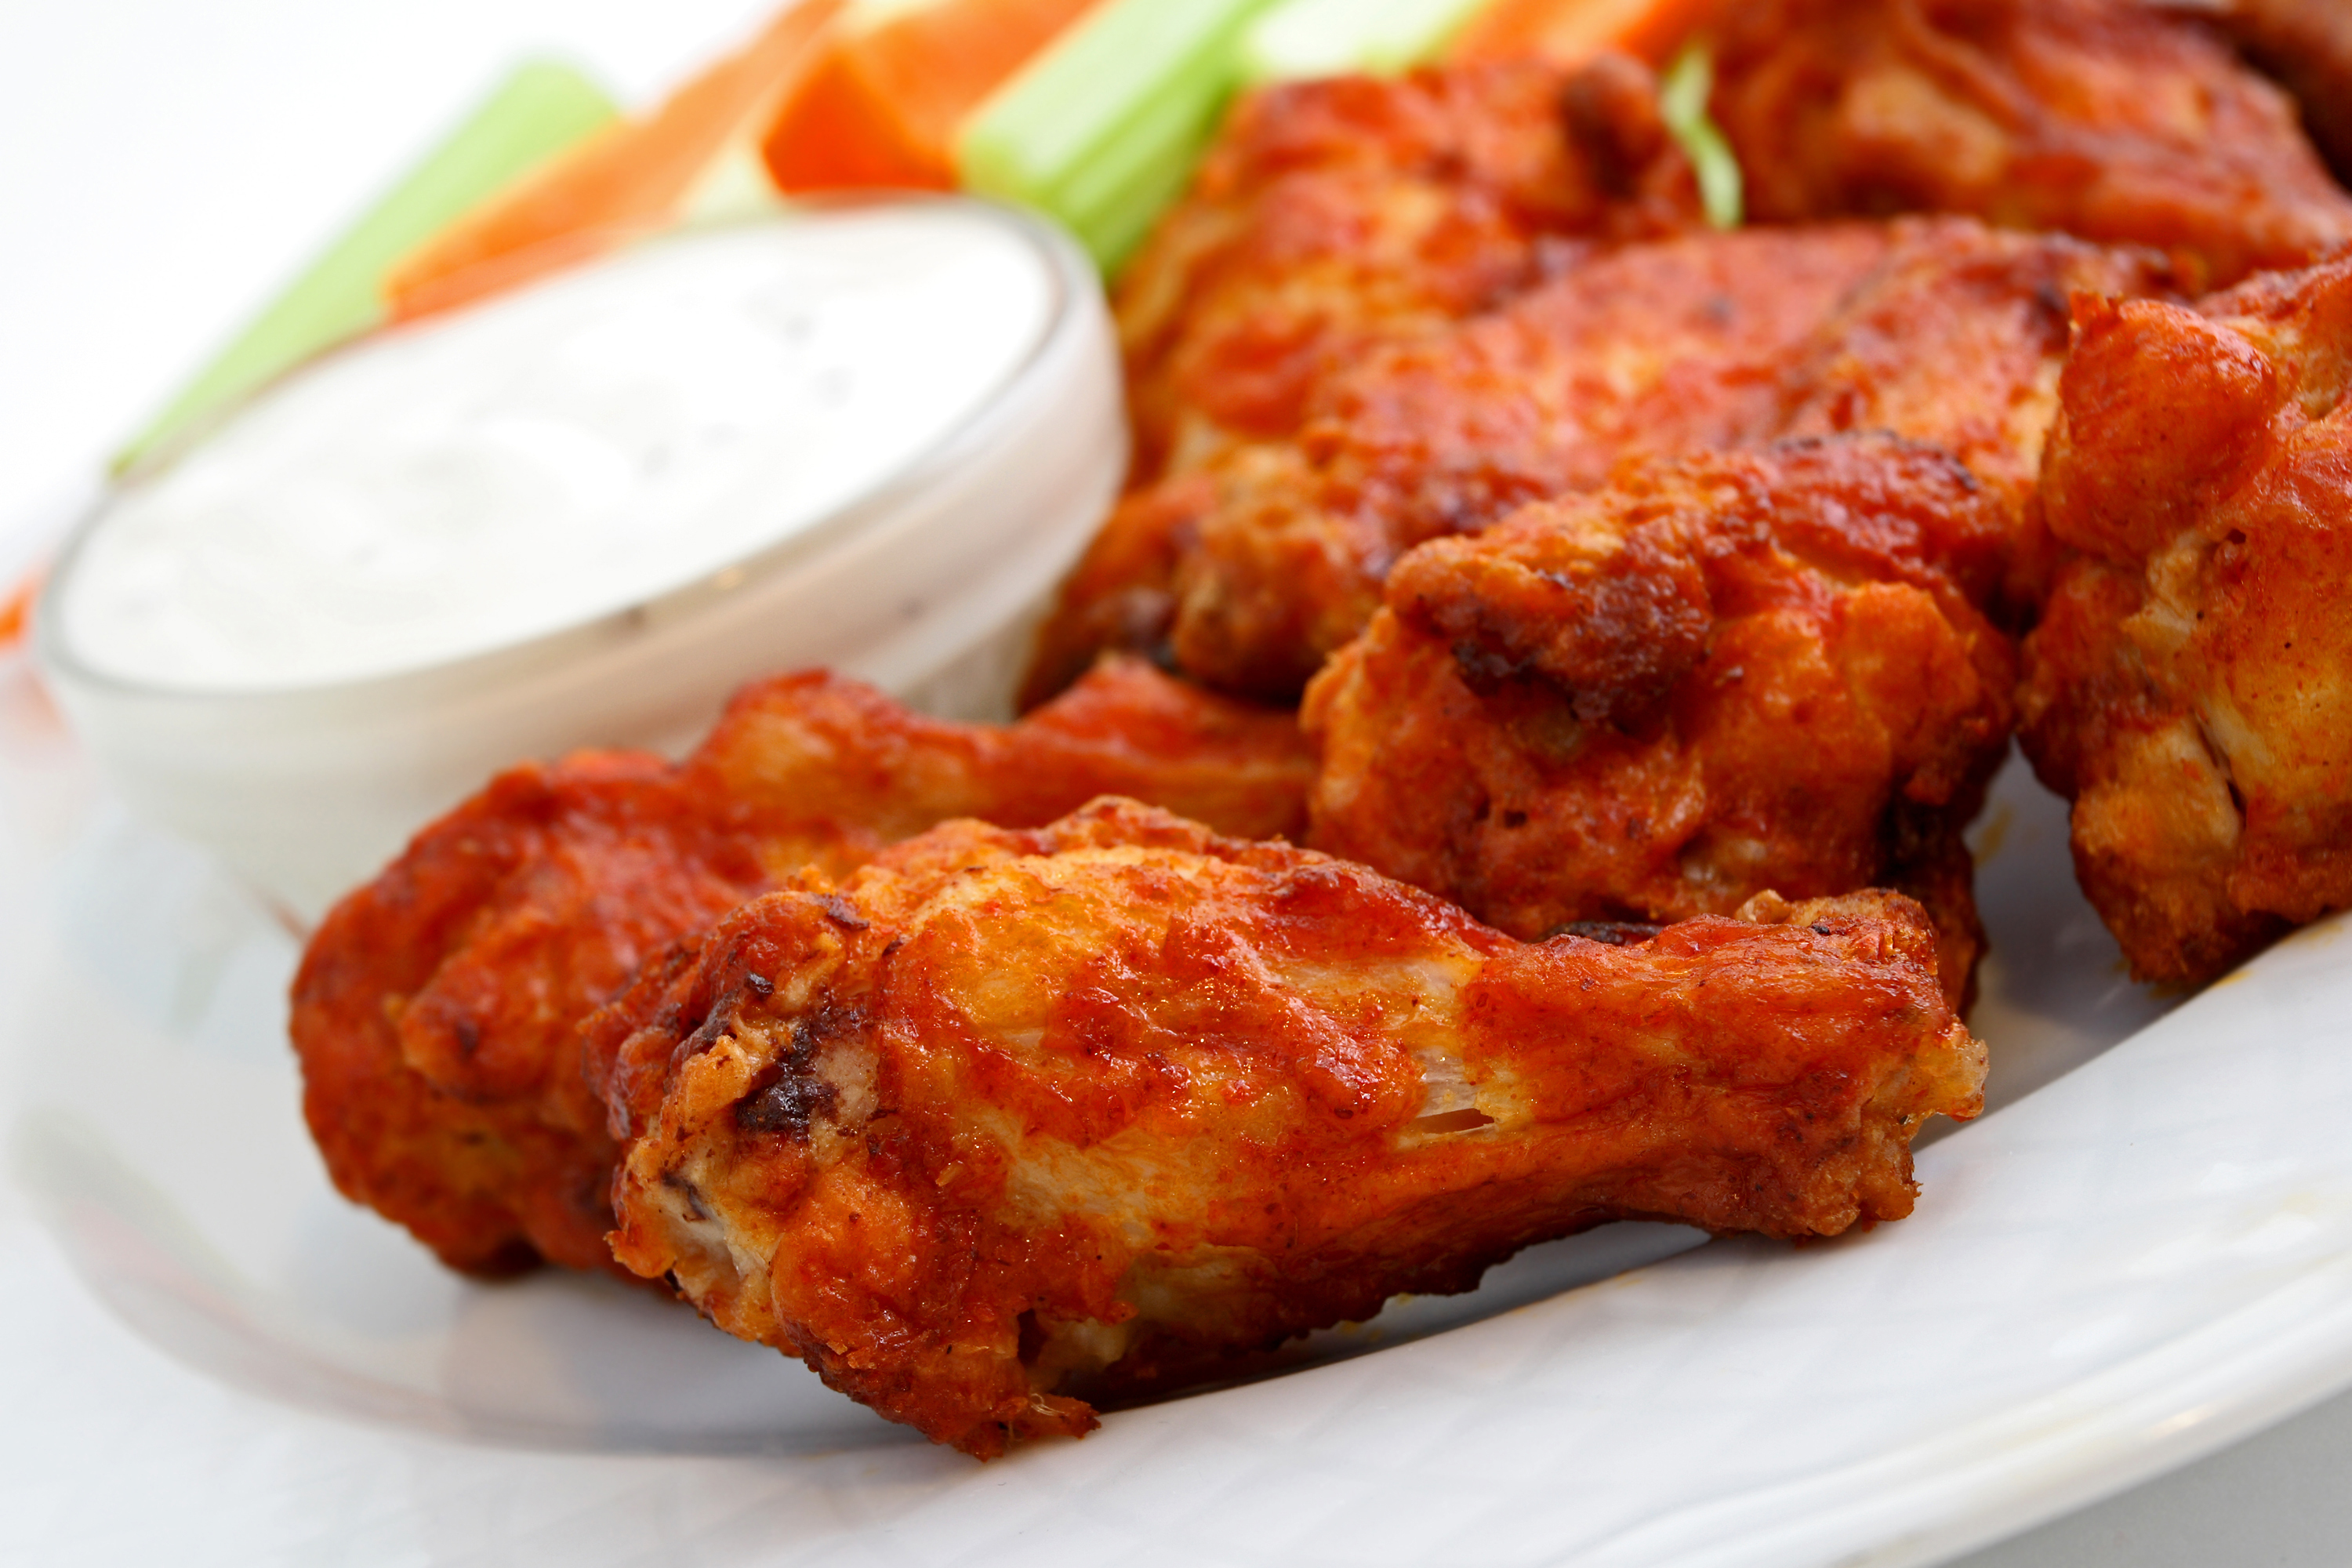 buffalo wings on a plate with dipping sauce